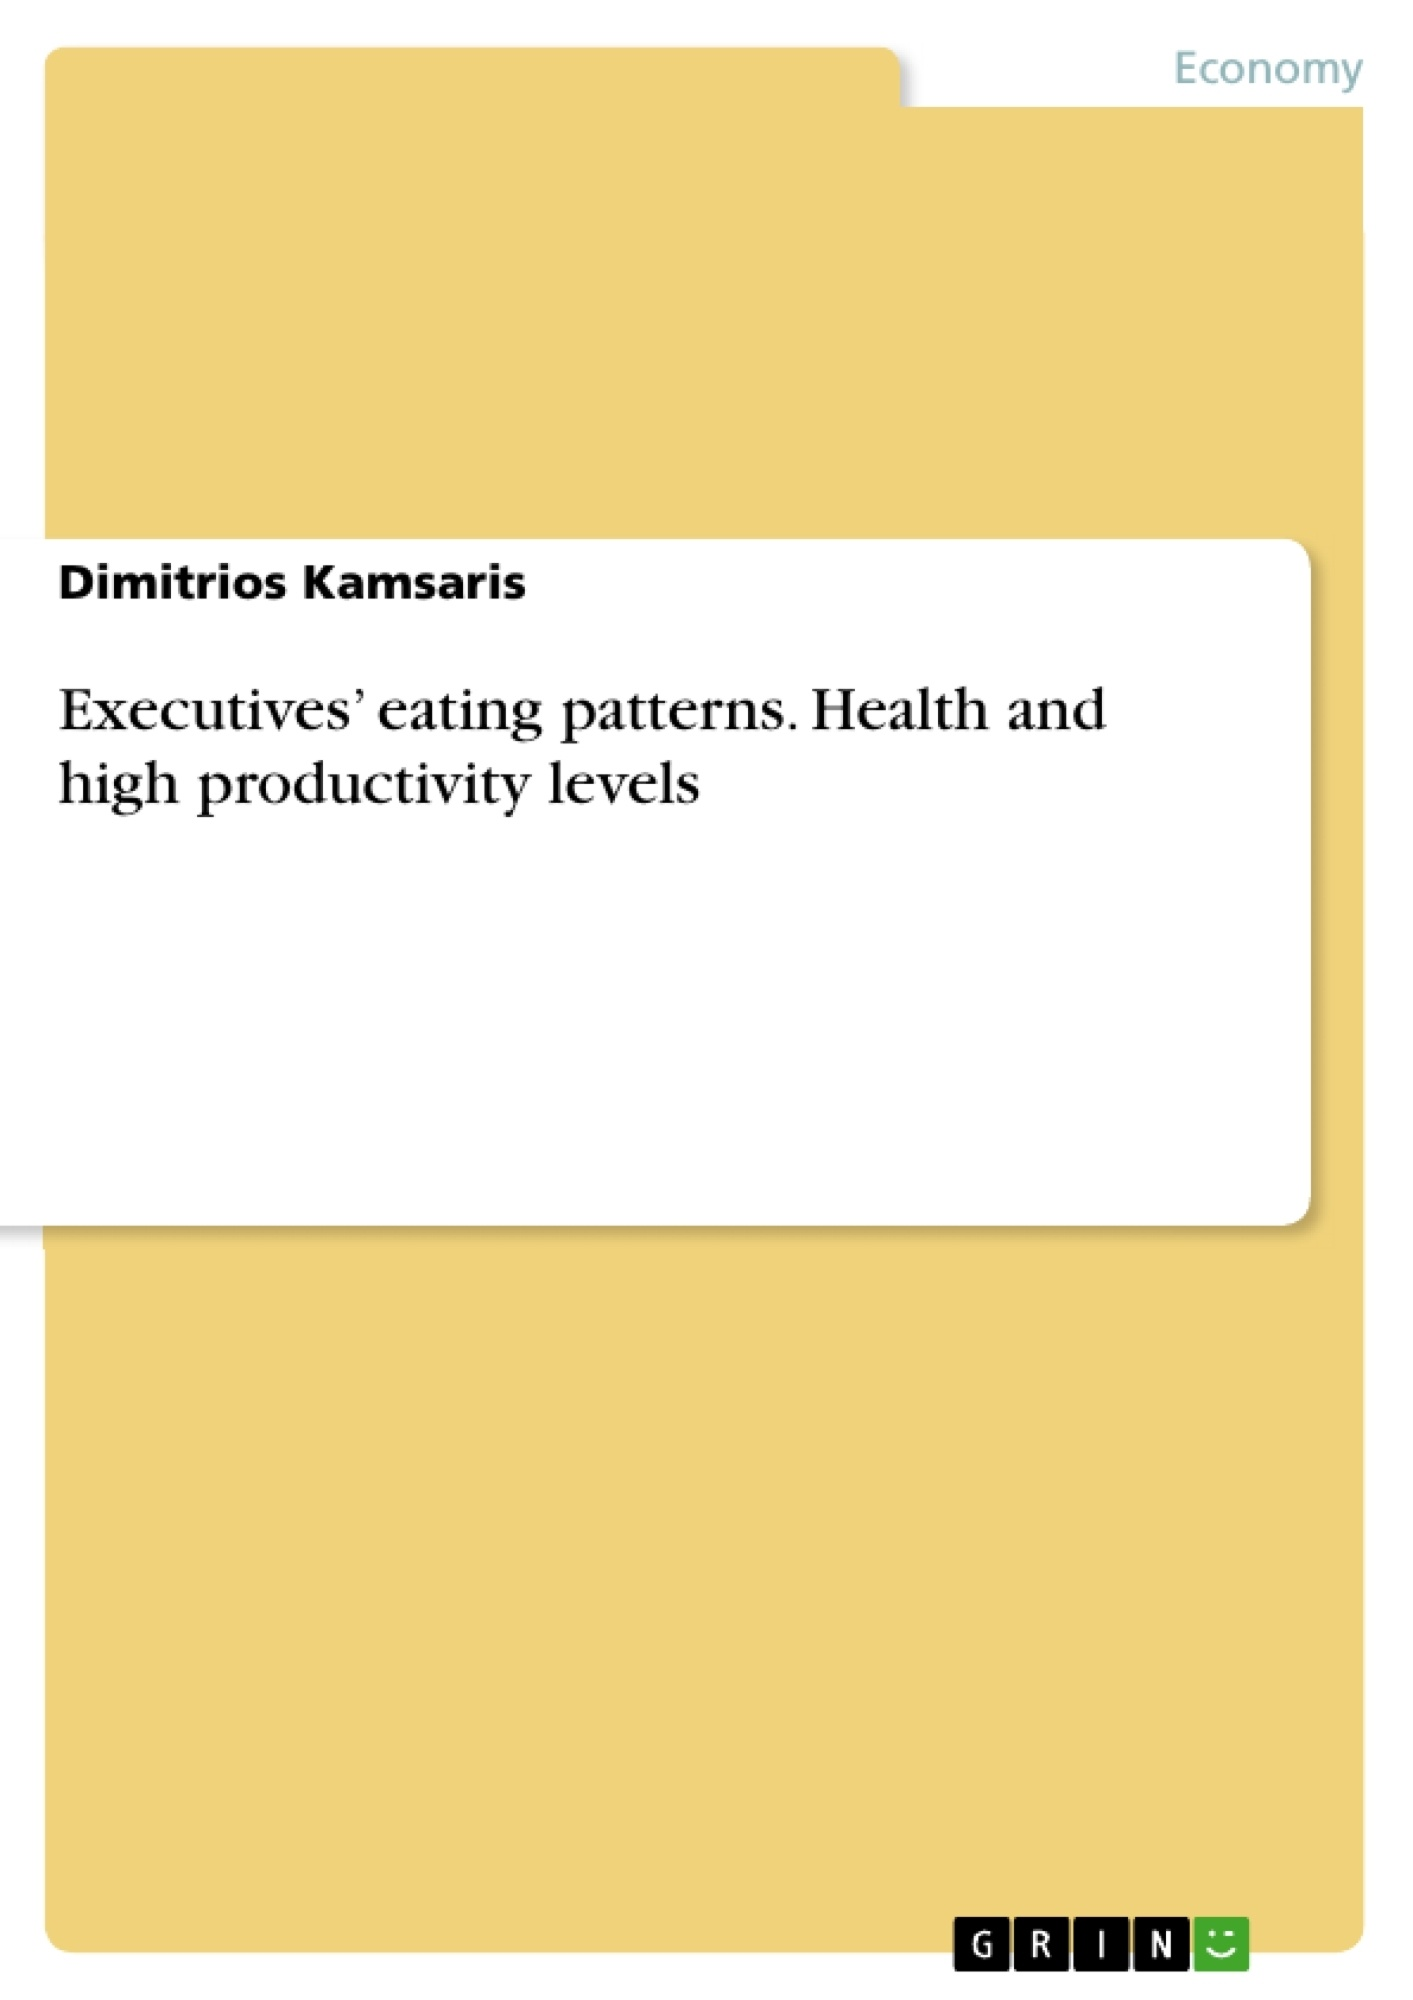 Title: Executives' eating patterns. Health and high productivity levels